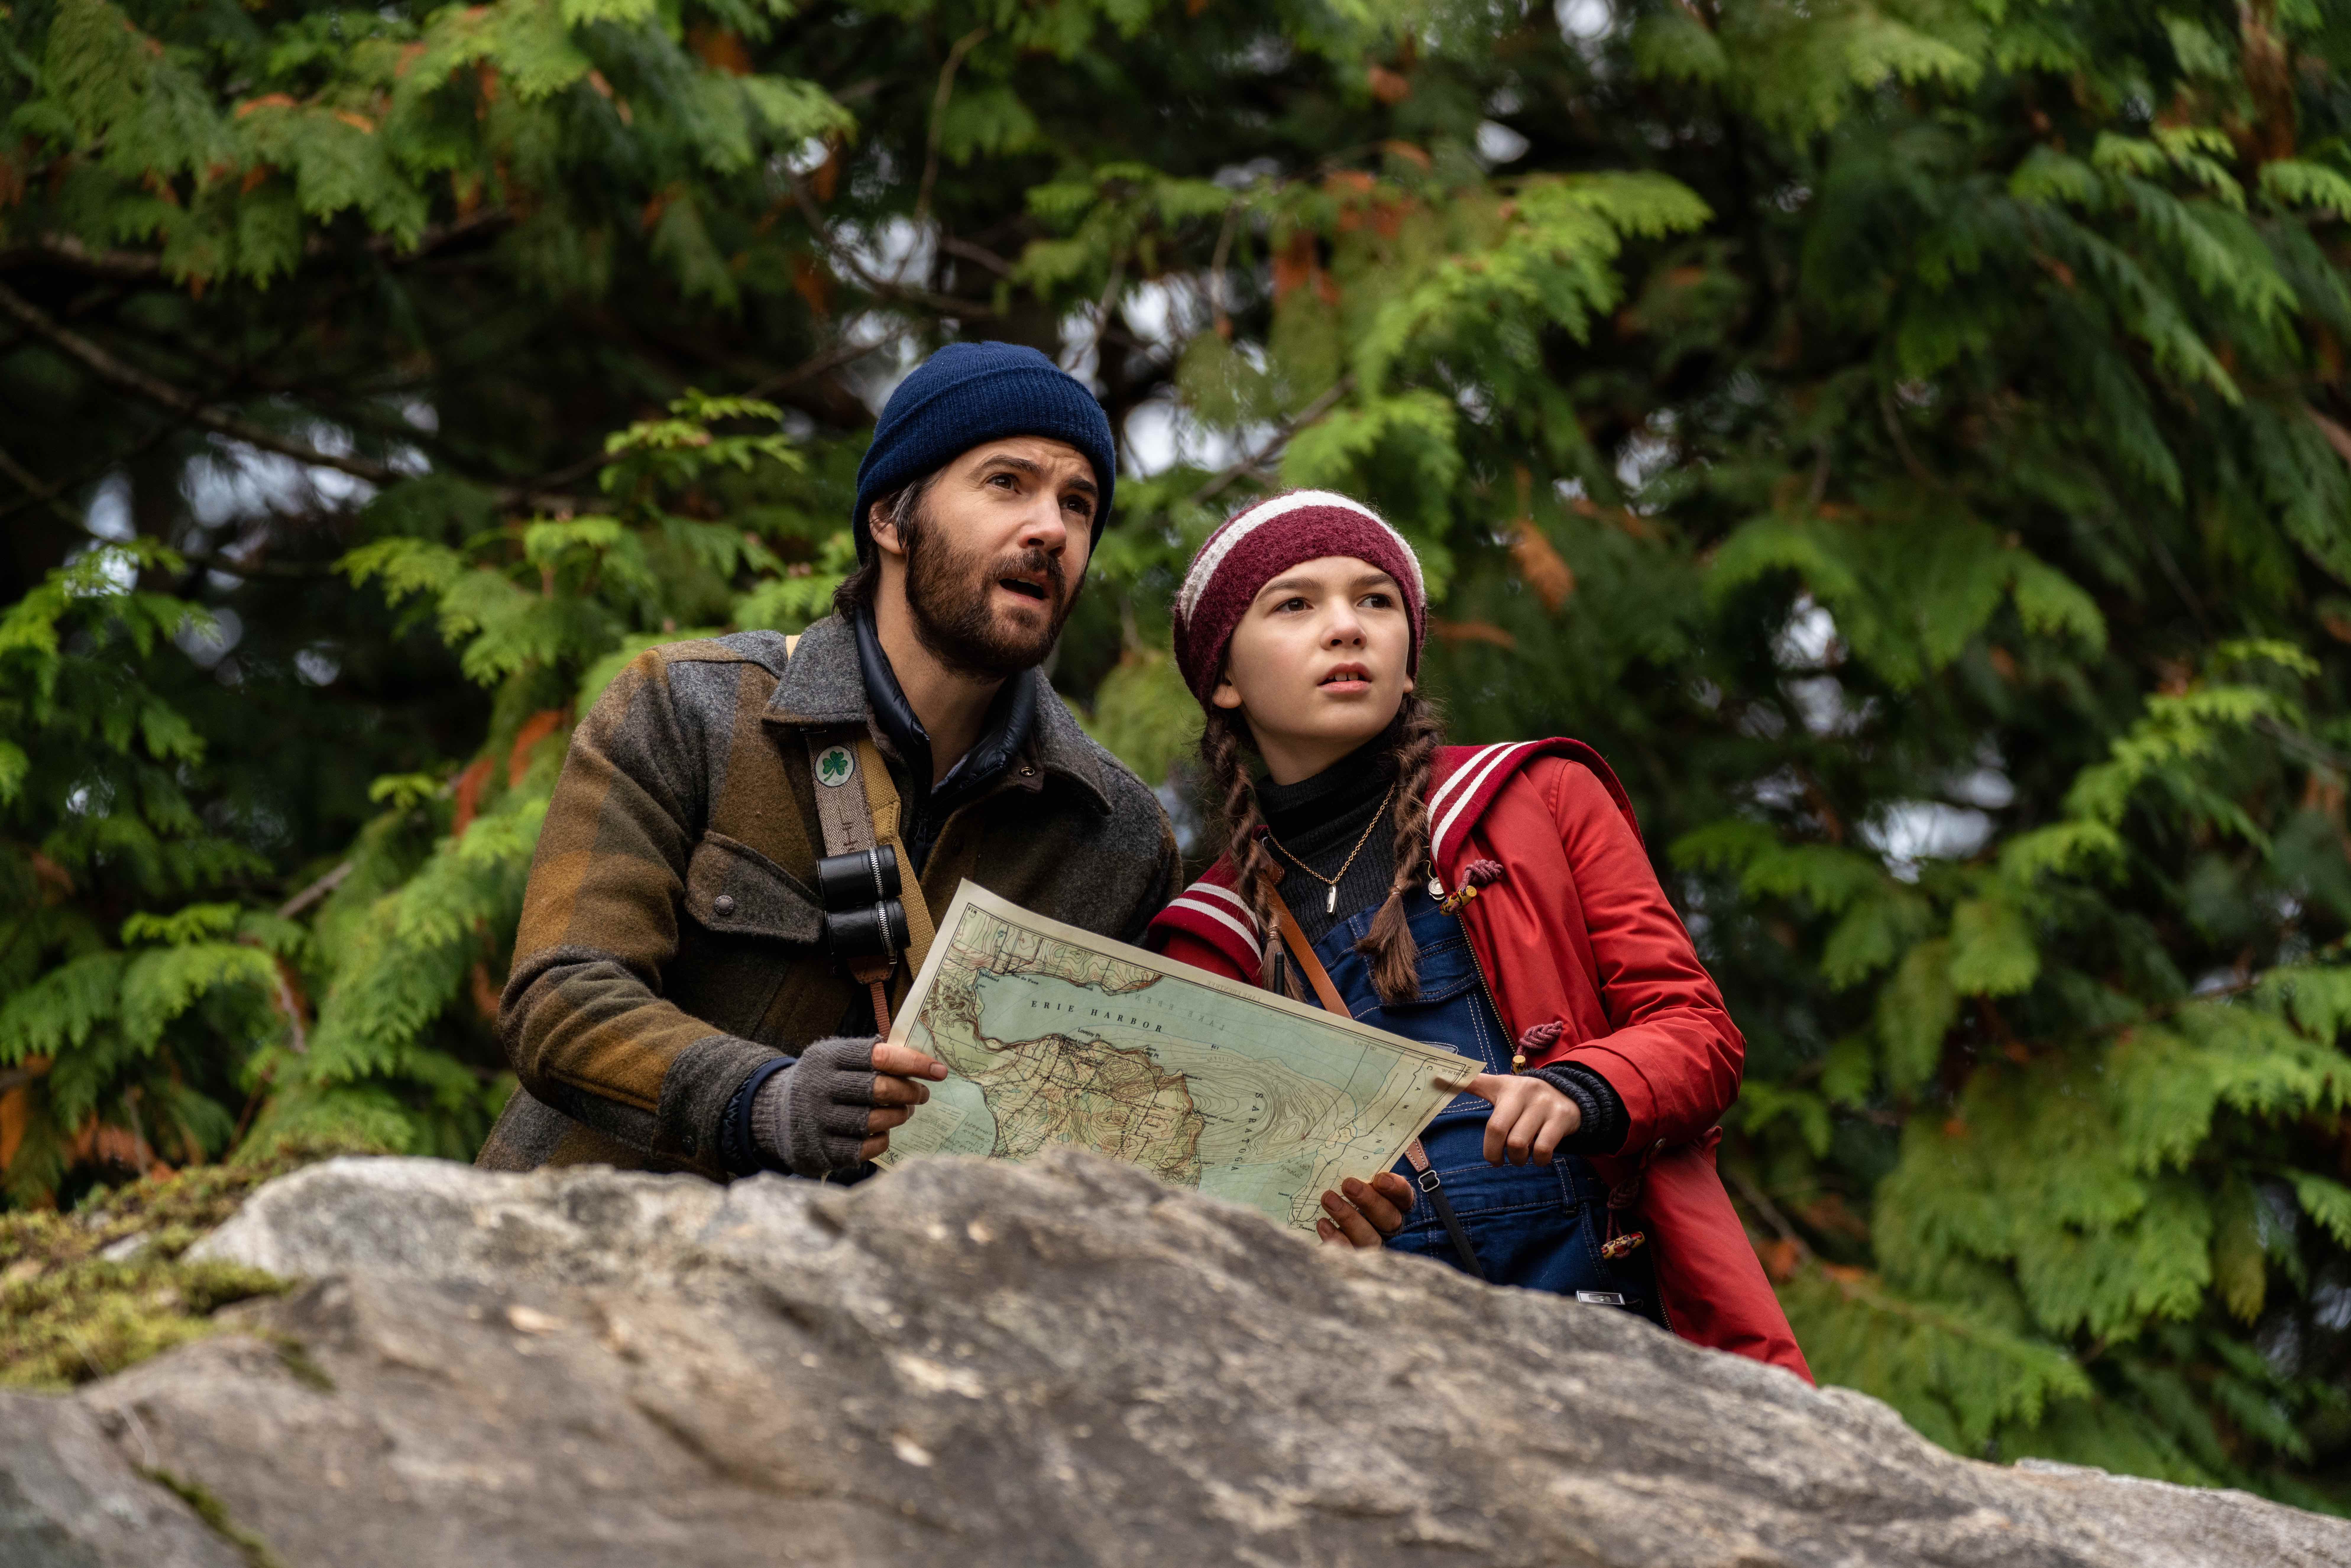 Jim Sturgess and Brooklynn Prince do some digging in Home Before Dark.